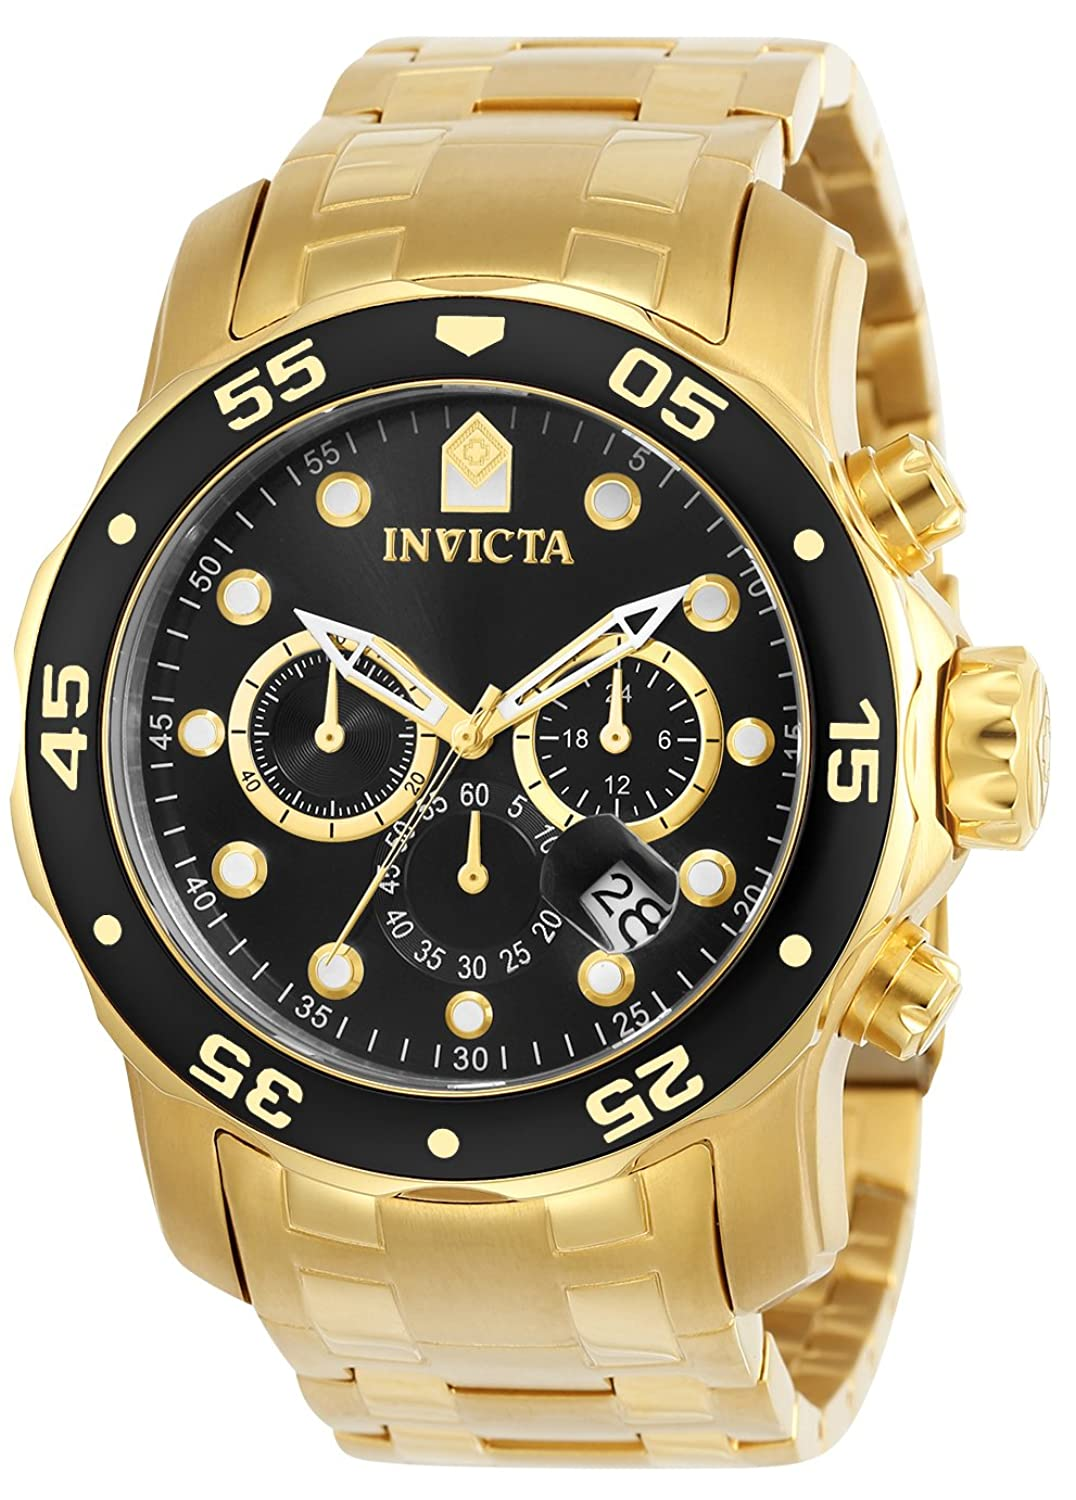 invicta watches shop amazon uk invicta men s pro diver quartz watch black dial chronograph display and gold plated bracelet 0072